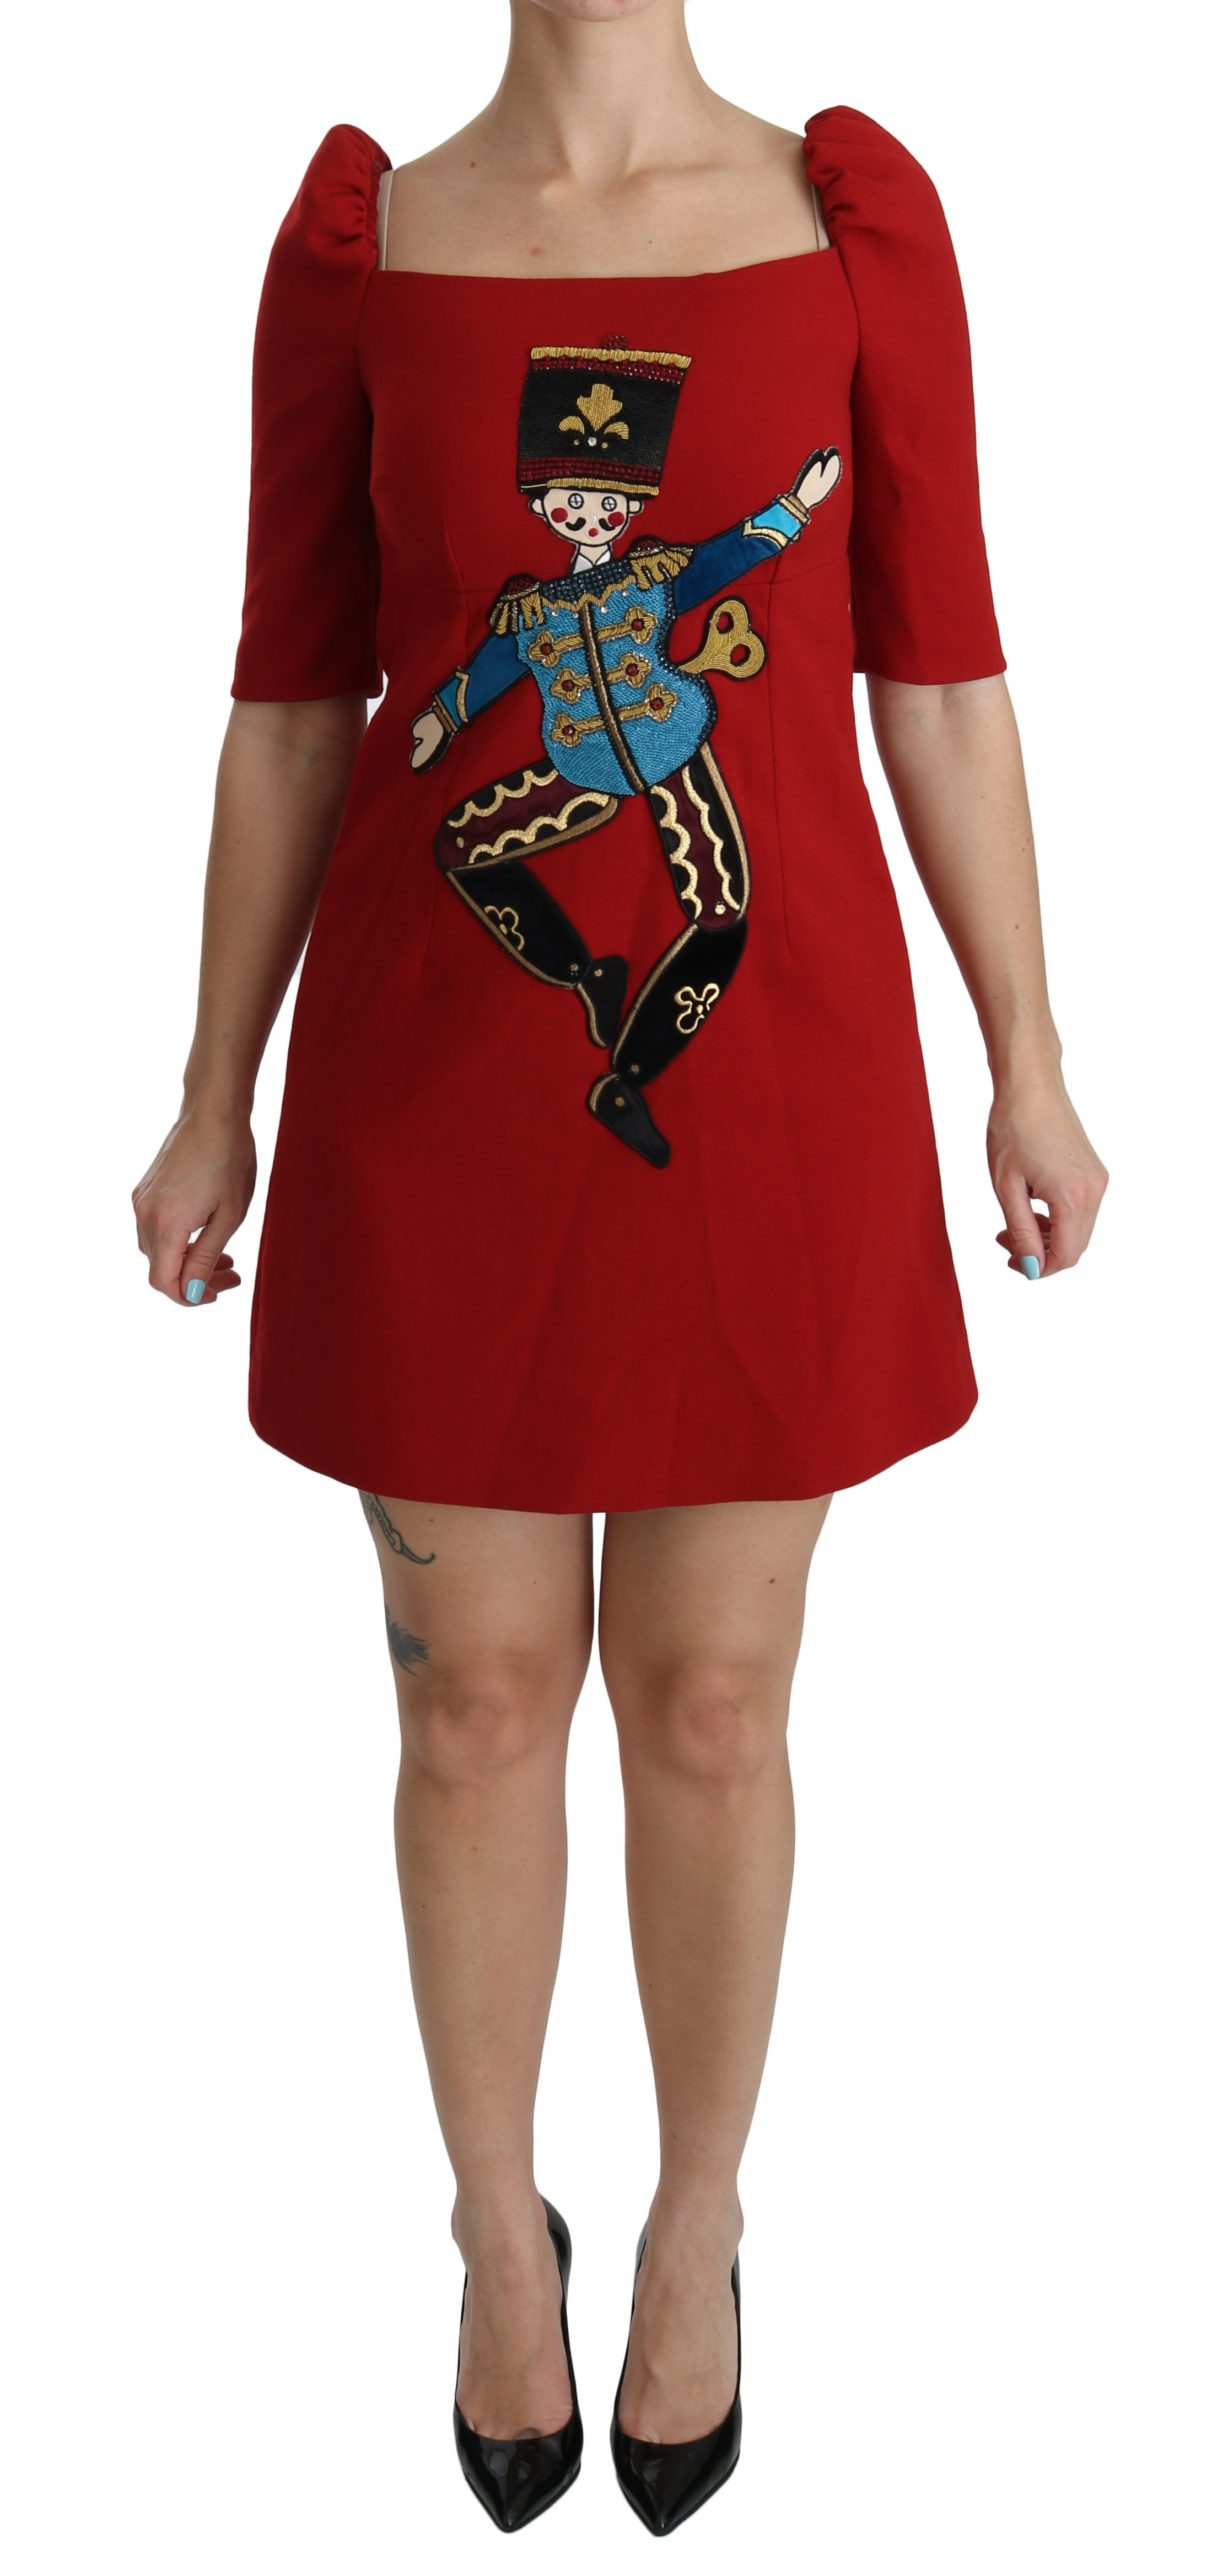 Dolce & Gabbana Women's Sequined Toy Shift A-line Dress Red DR2047 - IT42|M